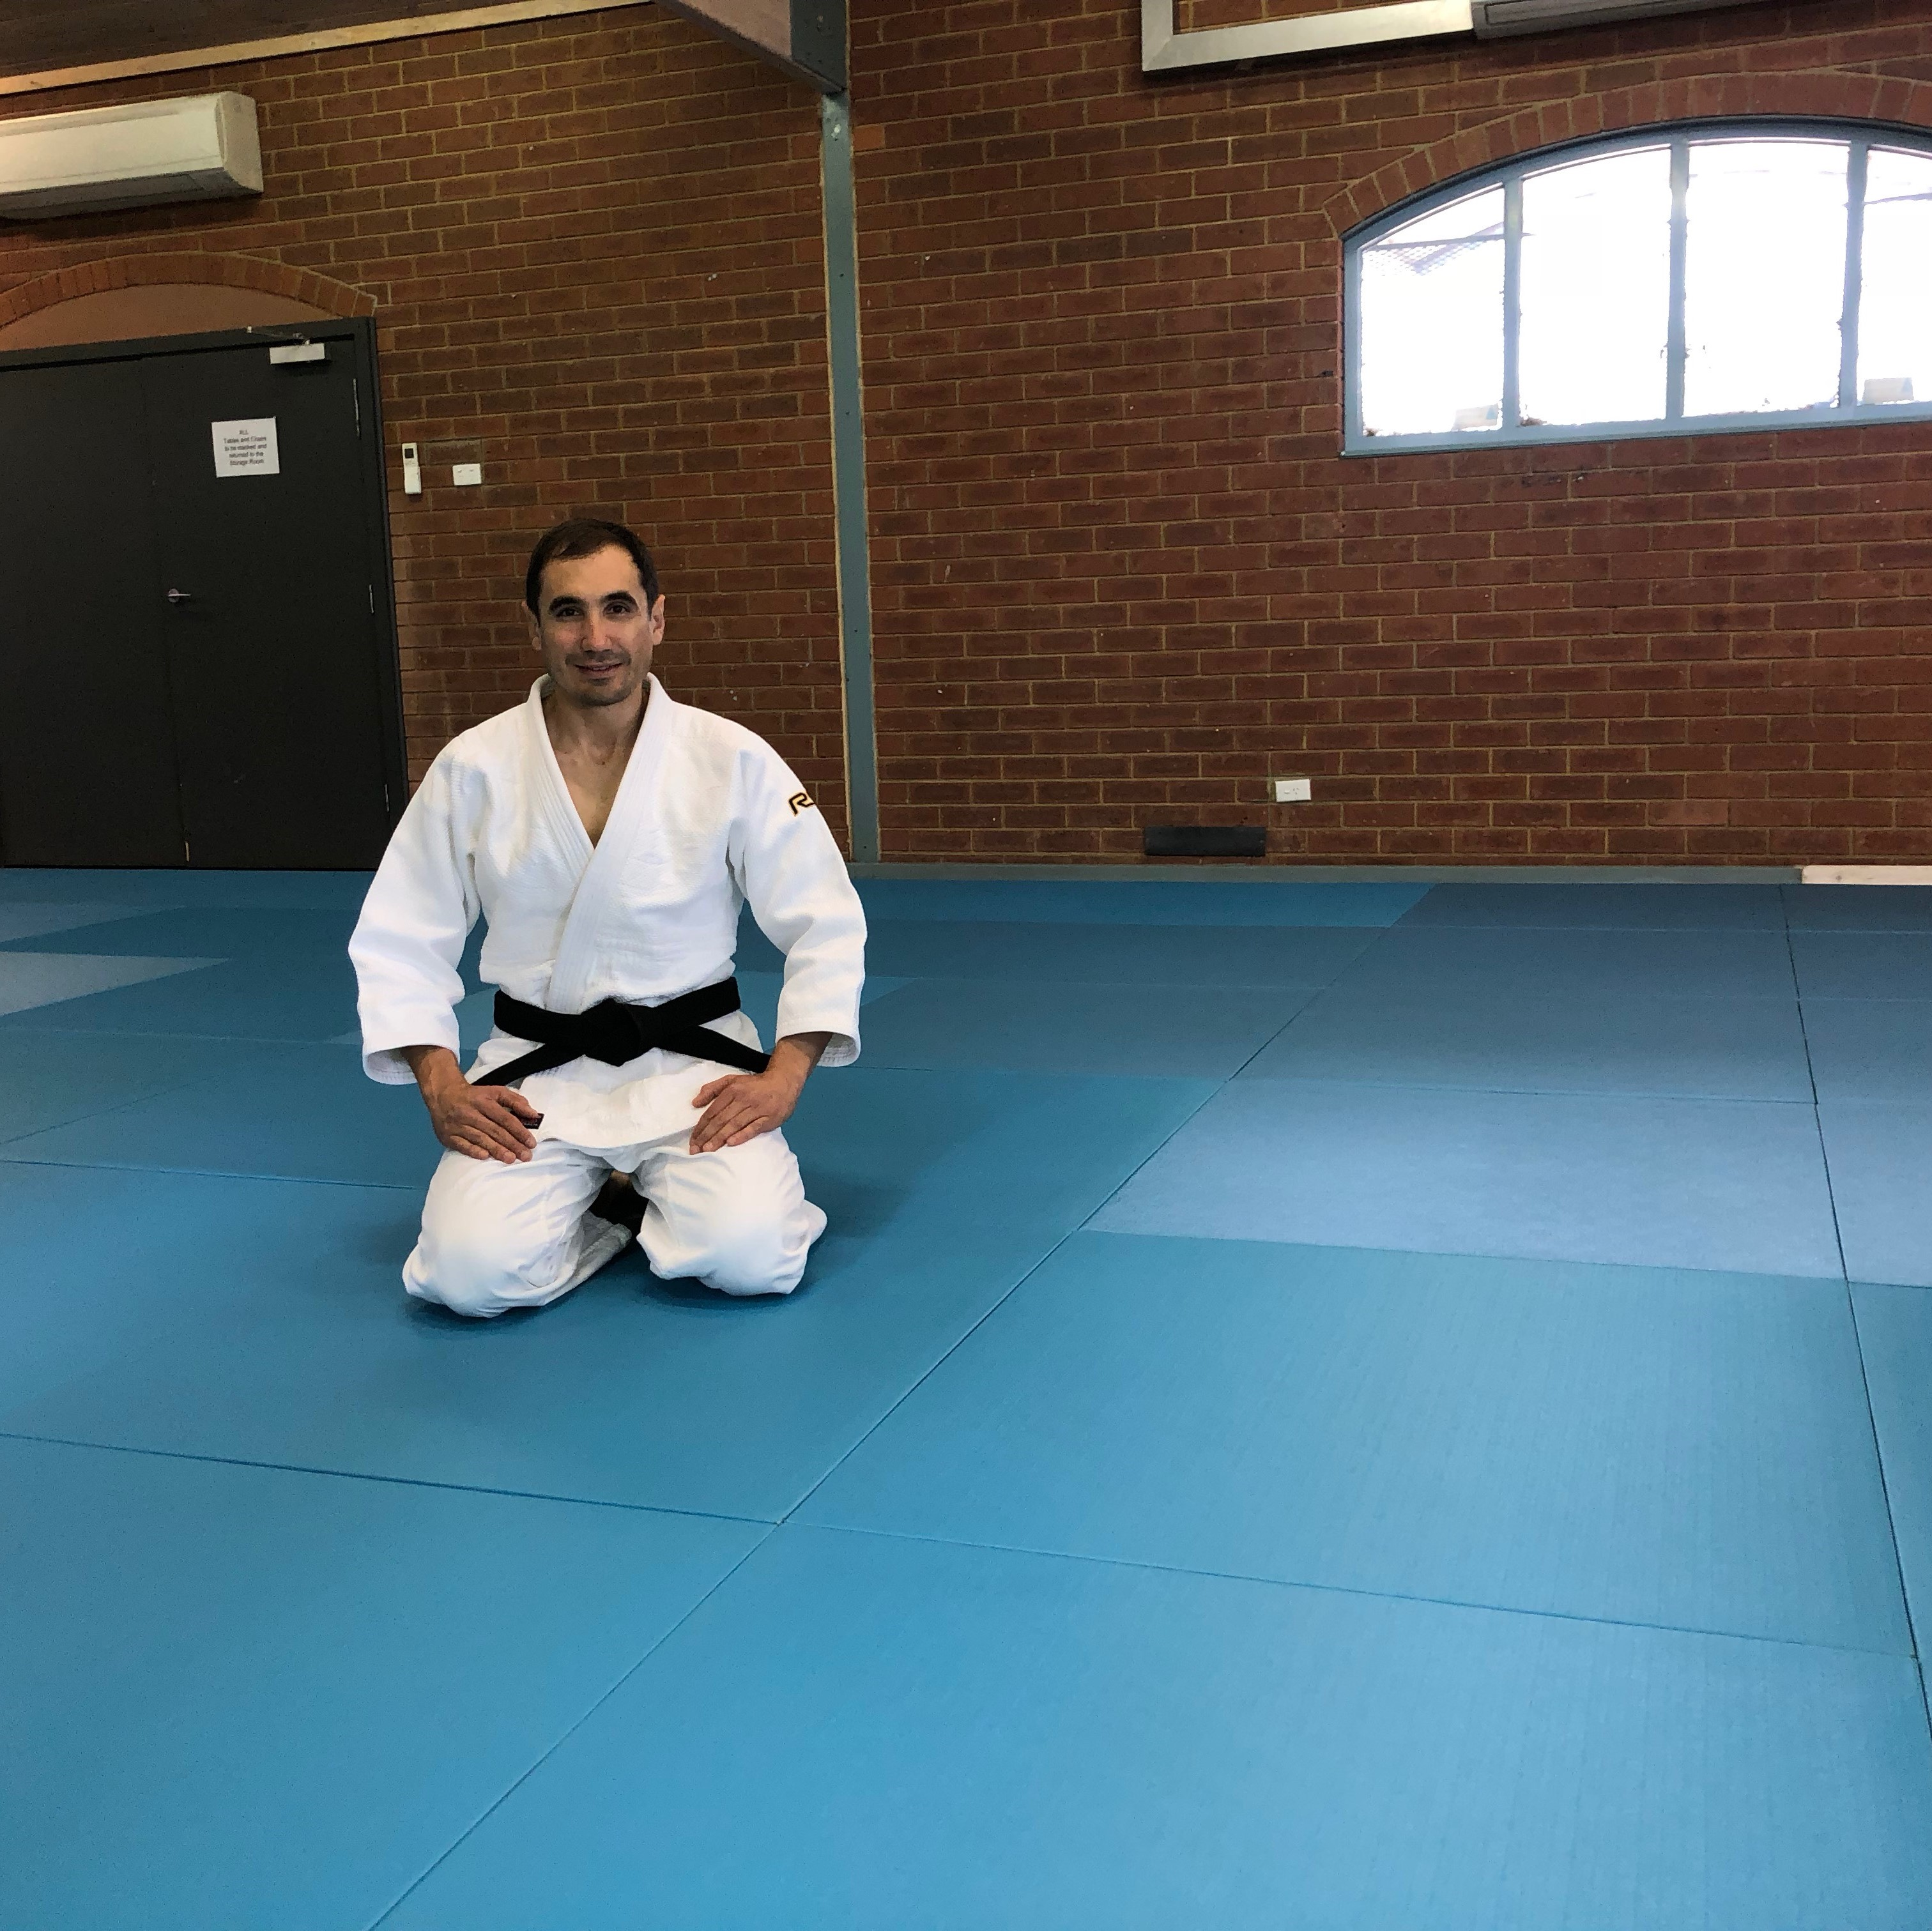 Trying out the tatami